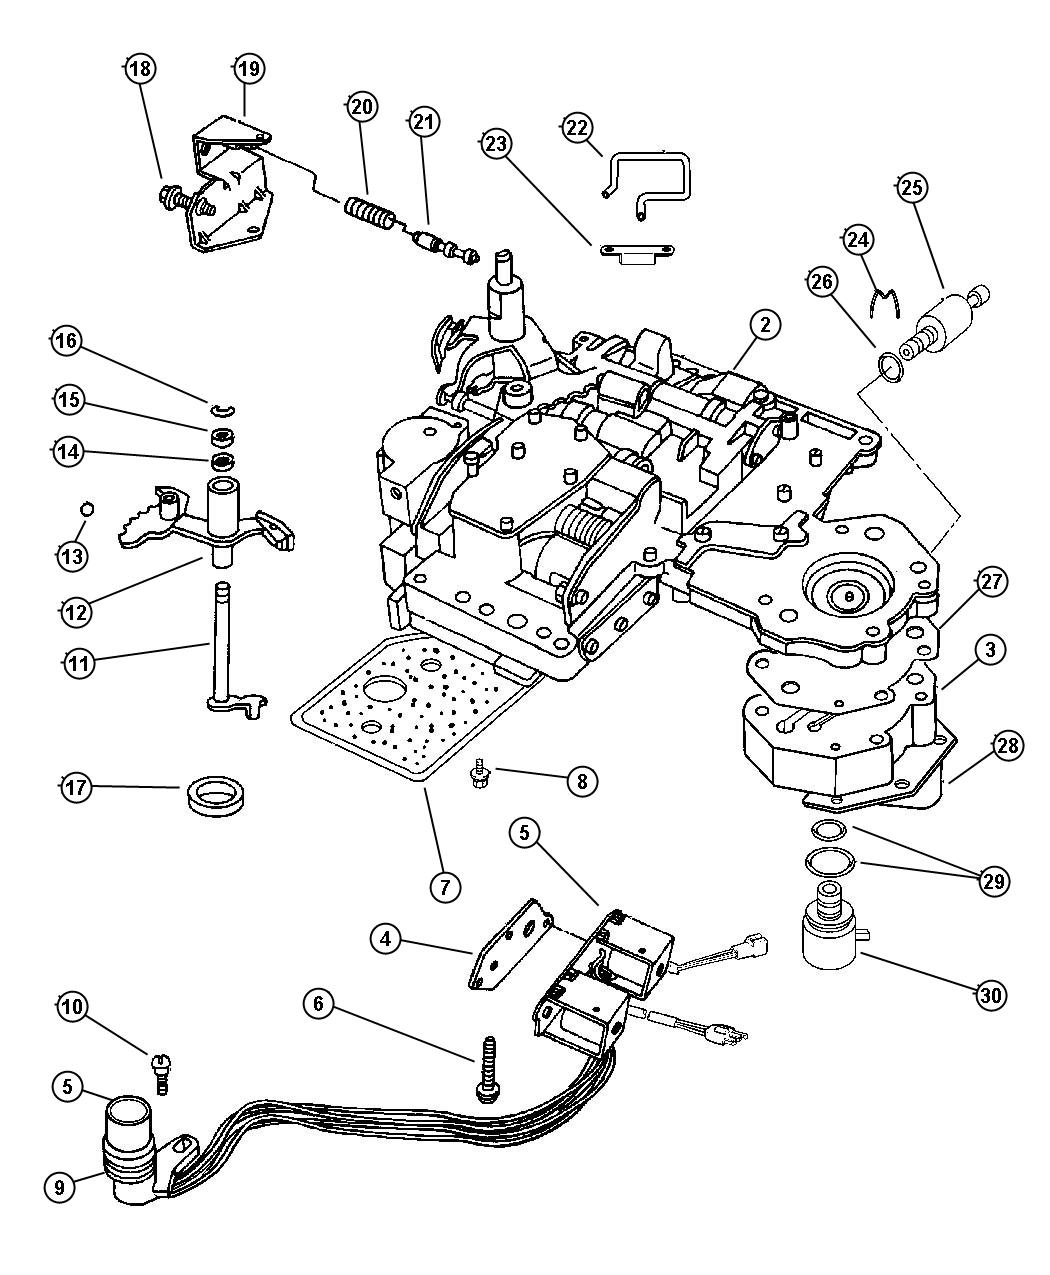 Dodge Ram Wiring Harness